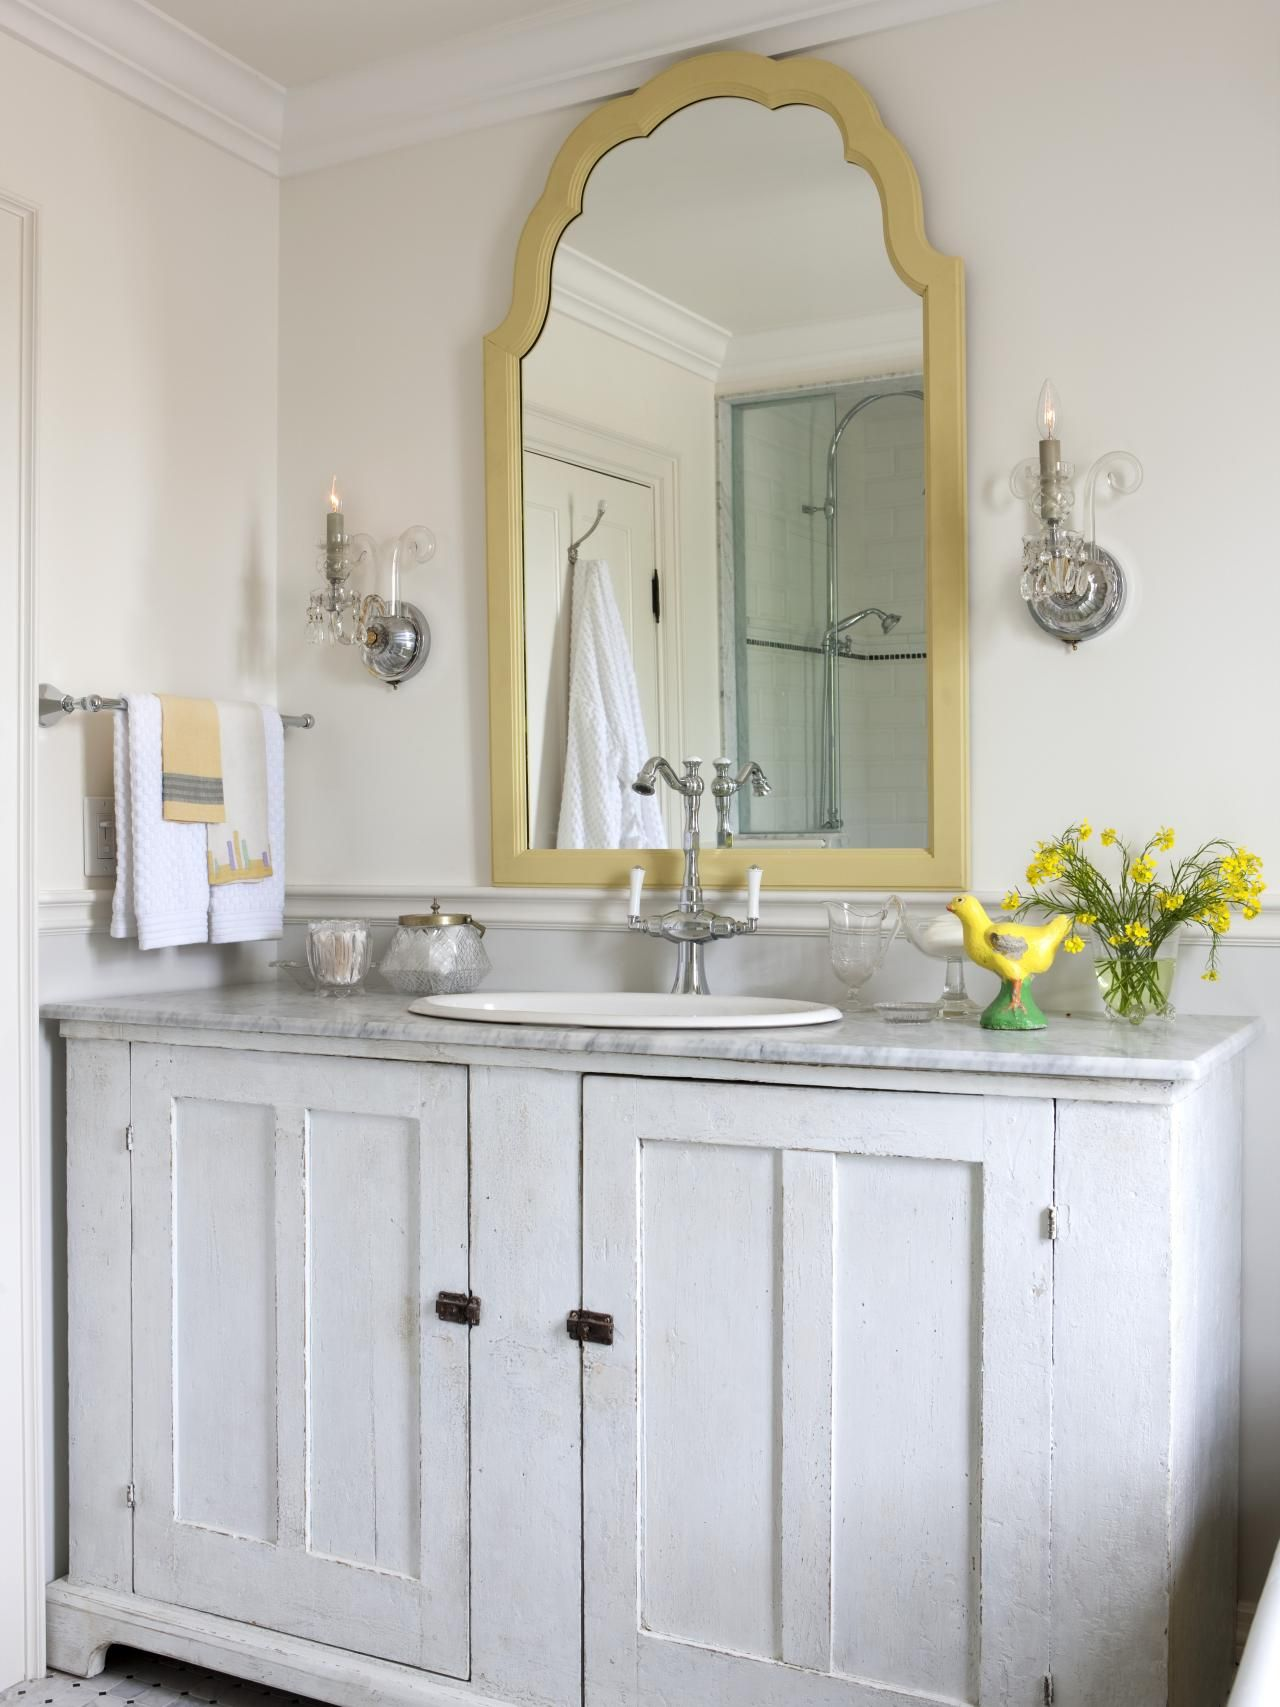 This Traditional White Bathroom Features A Gold Trim Mirror - Gold bathroom light fixtures for bathroom decor ideas